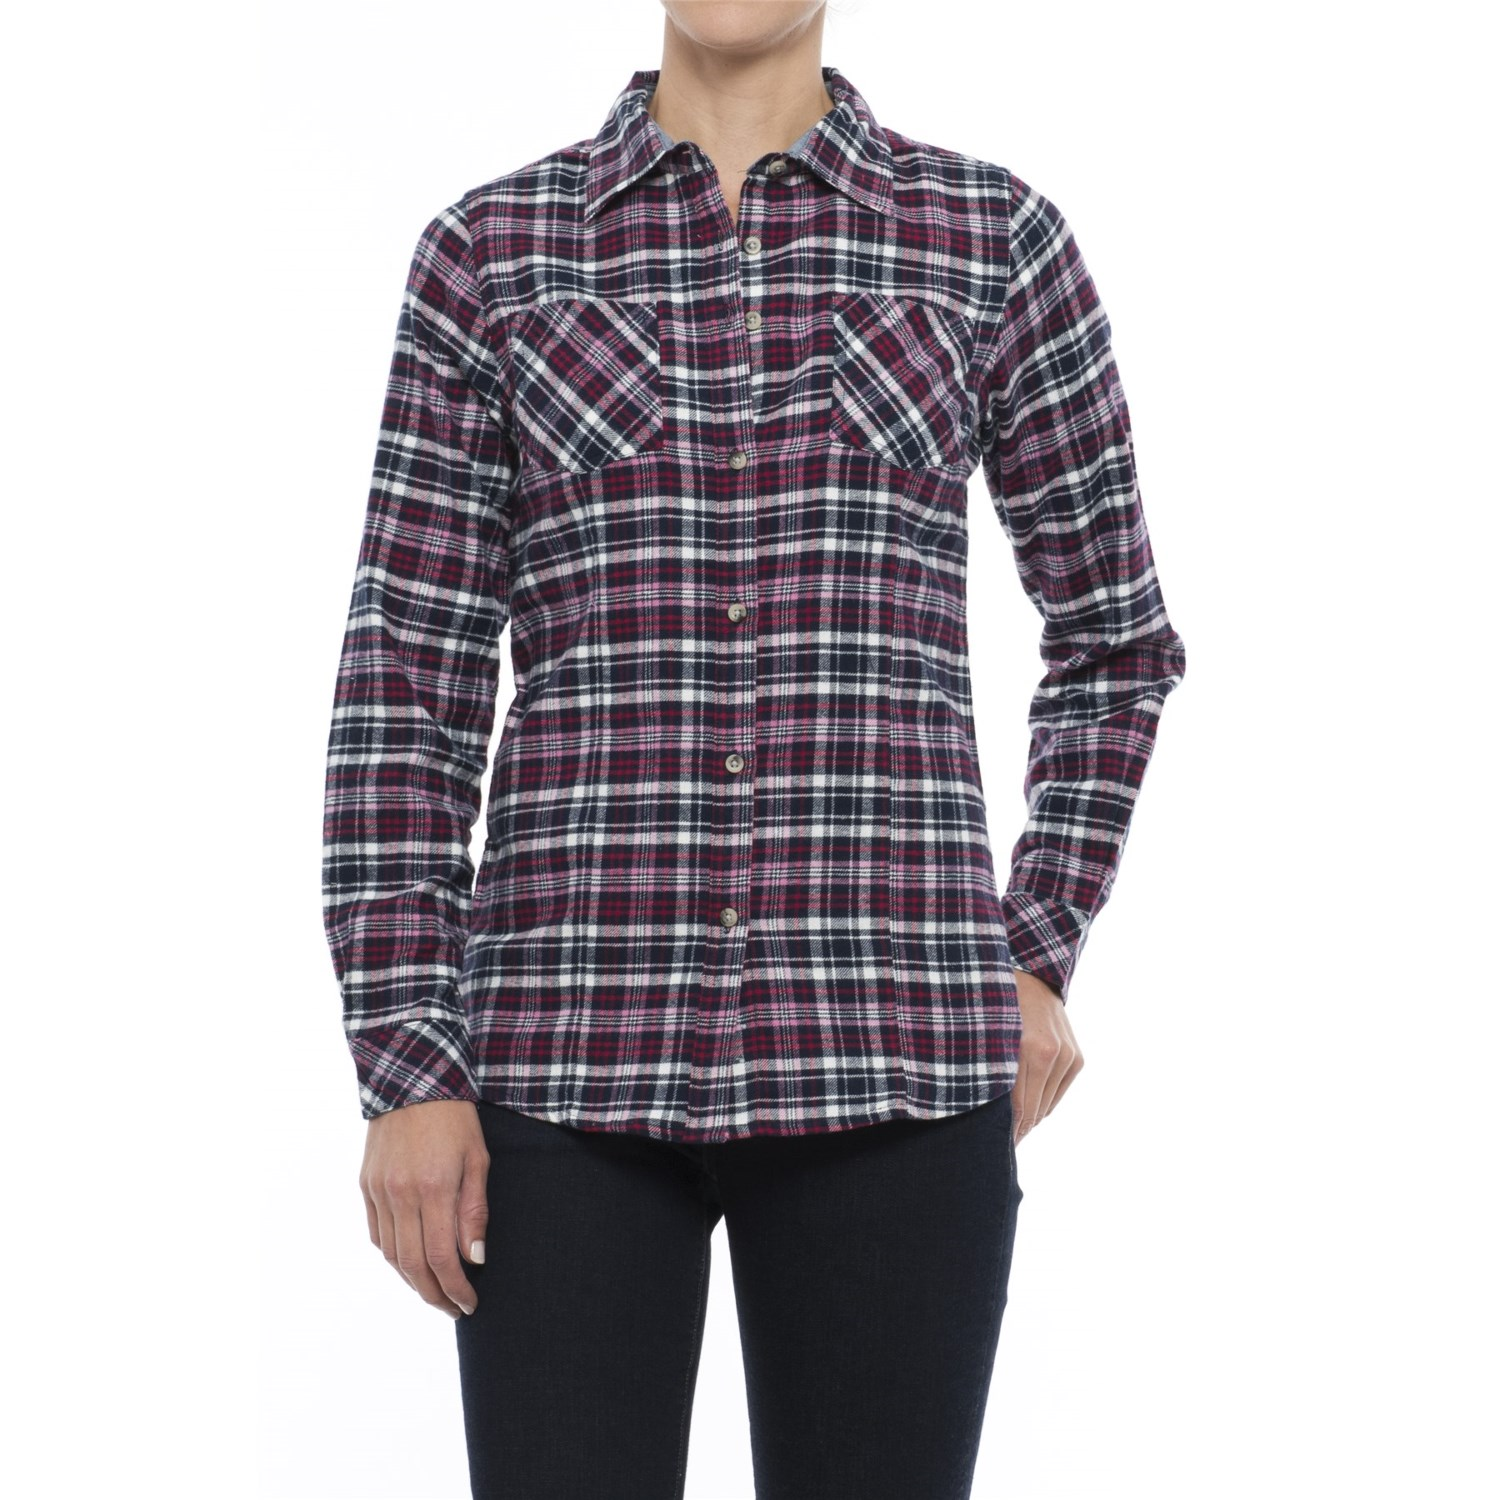 Tallwoods Cotton Plaid Flannel Shirt (For Women) - Save 75%